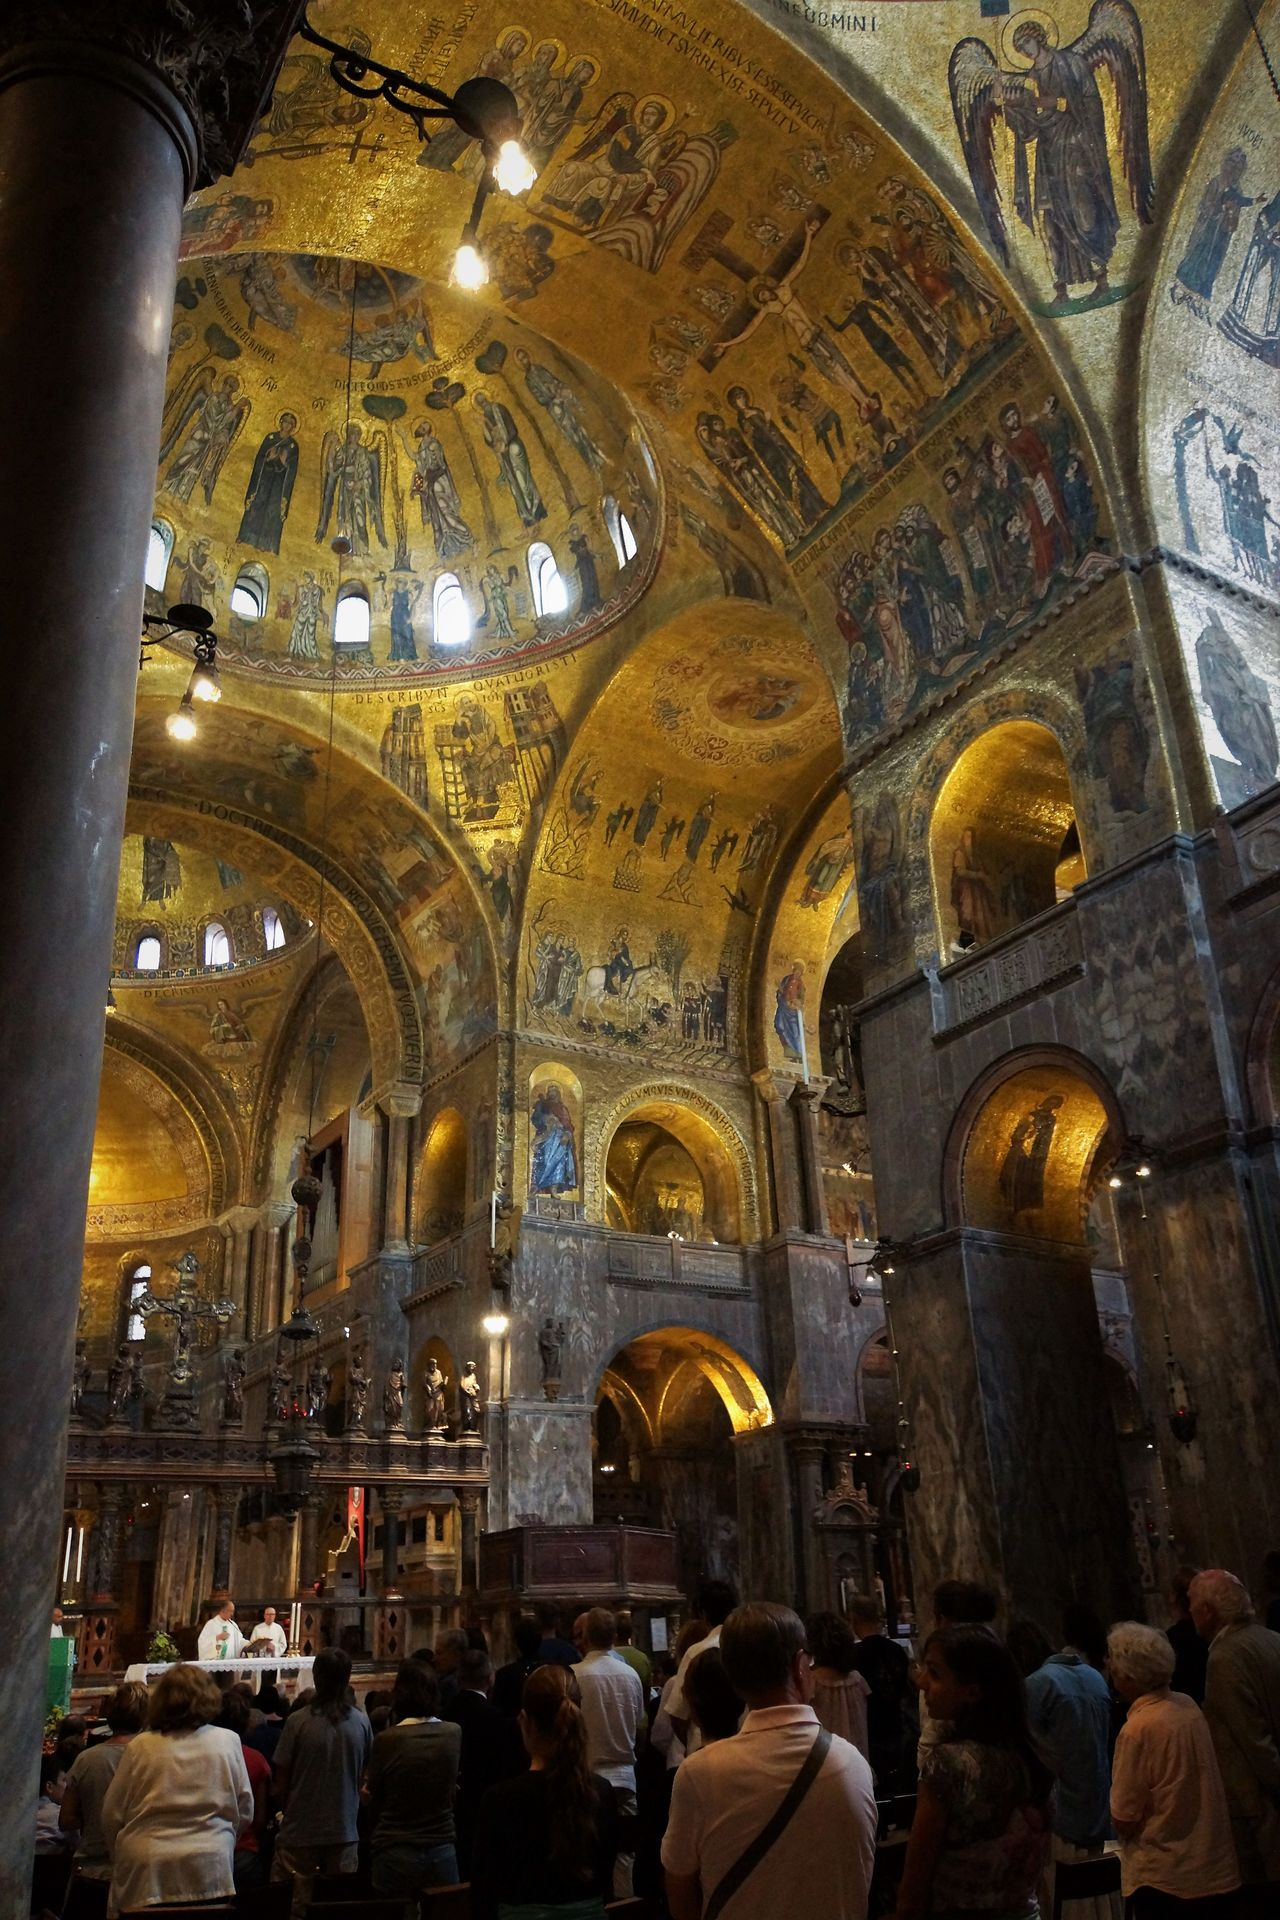 Chiesa de San Marco inside Arch Architecture Byzantinic Day Dogenpalast Golden Sunset Indoors  Large Group Of People Leisure Activity Mosaic People Place Of Worship Real People Religion Tourism Travel Destinations